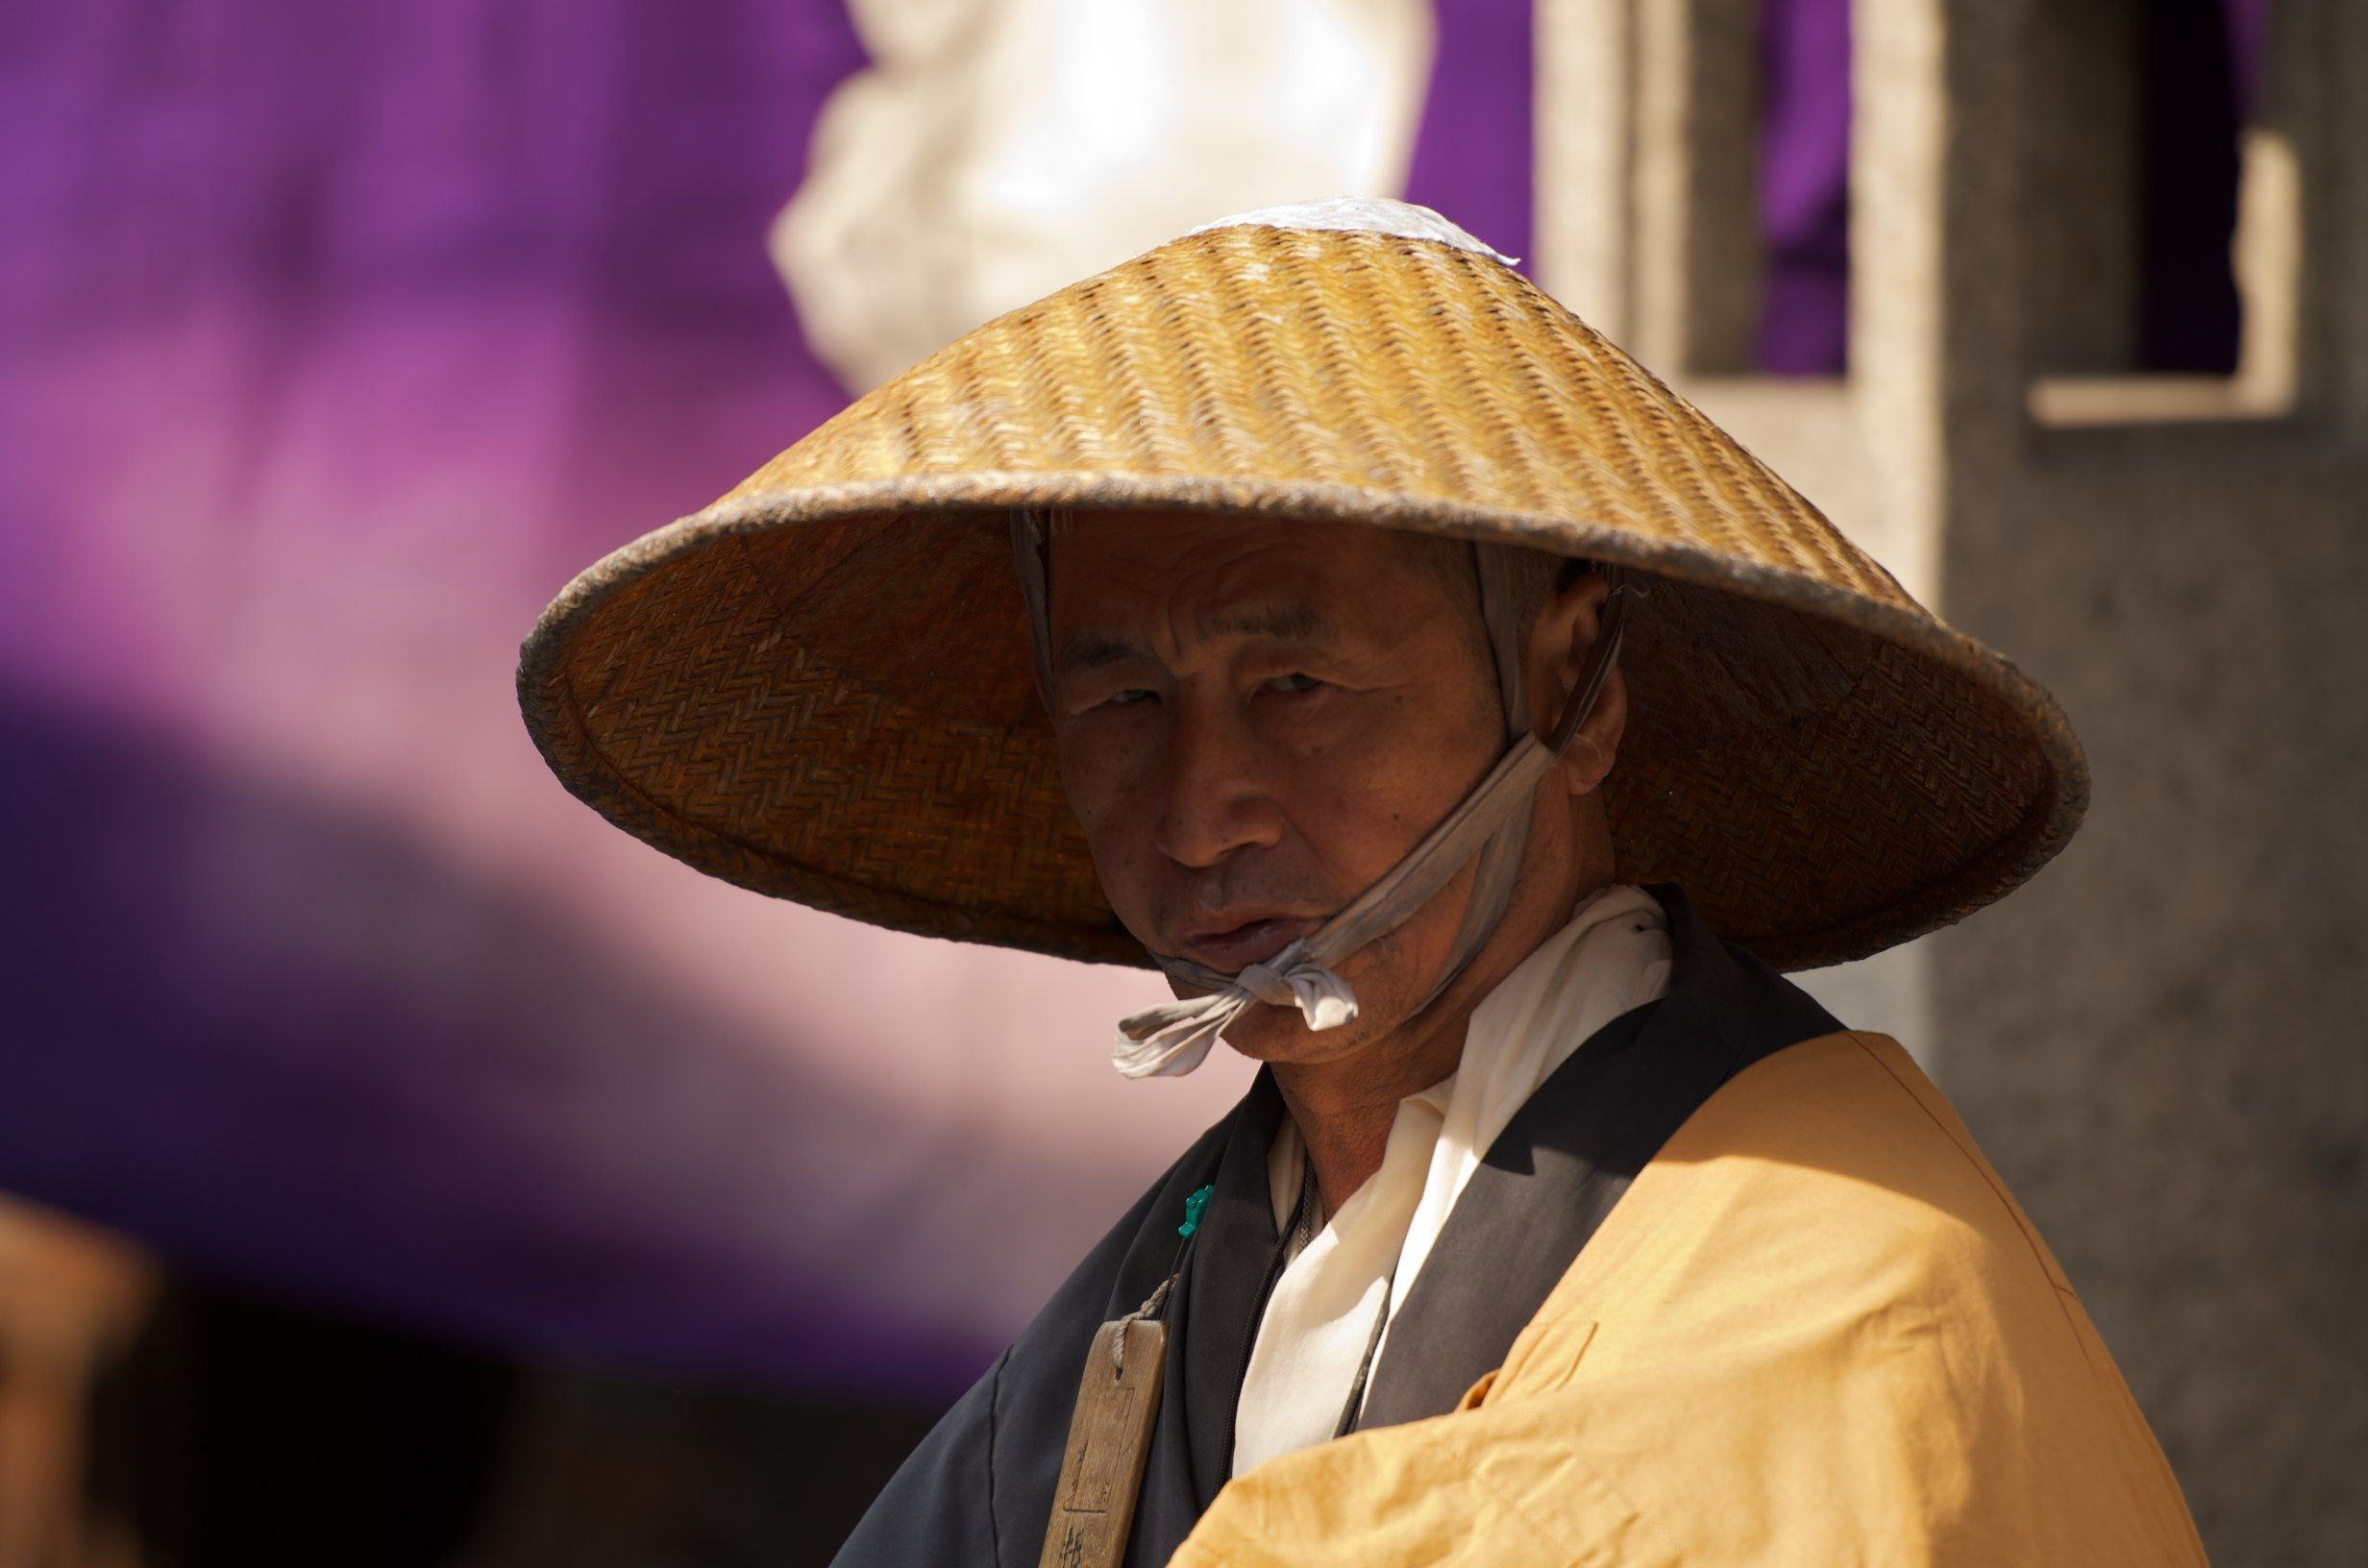 Japanese Man In Traditional Clothing And Hat Hats Japanese Men Traditional Outfits